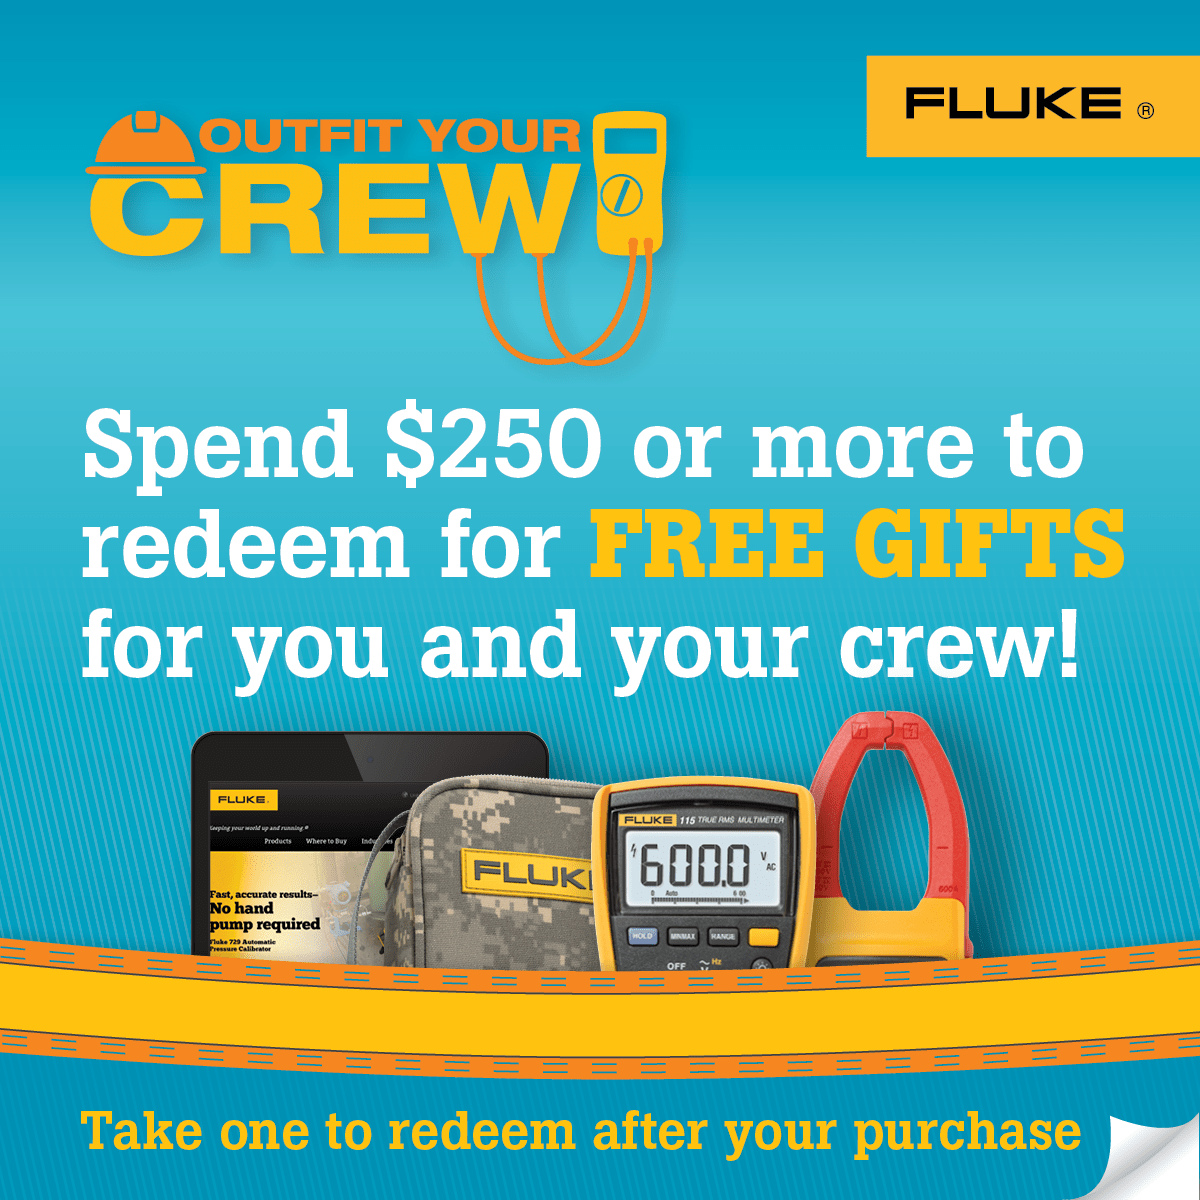 Fluke T3 National Promo, Outfit Your Crew, Tear-off Cards